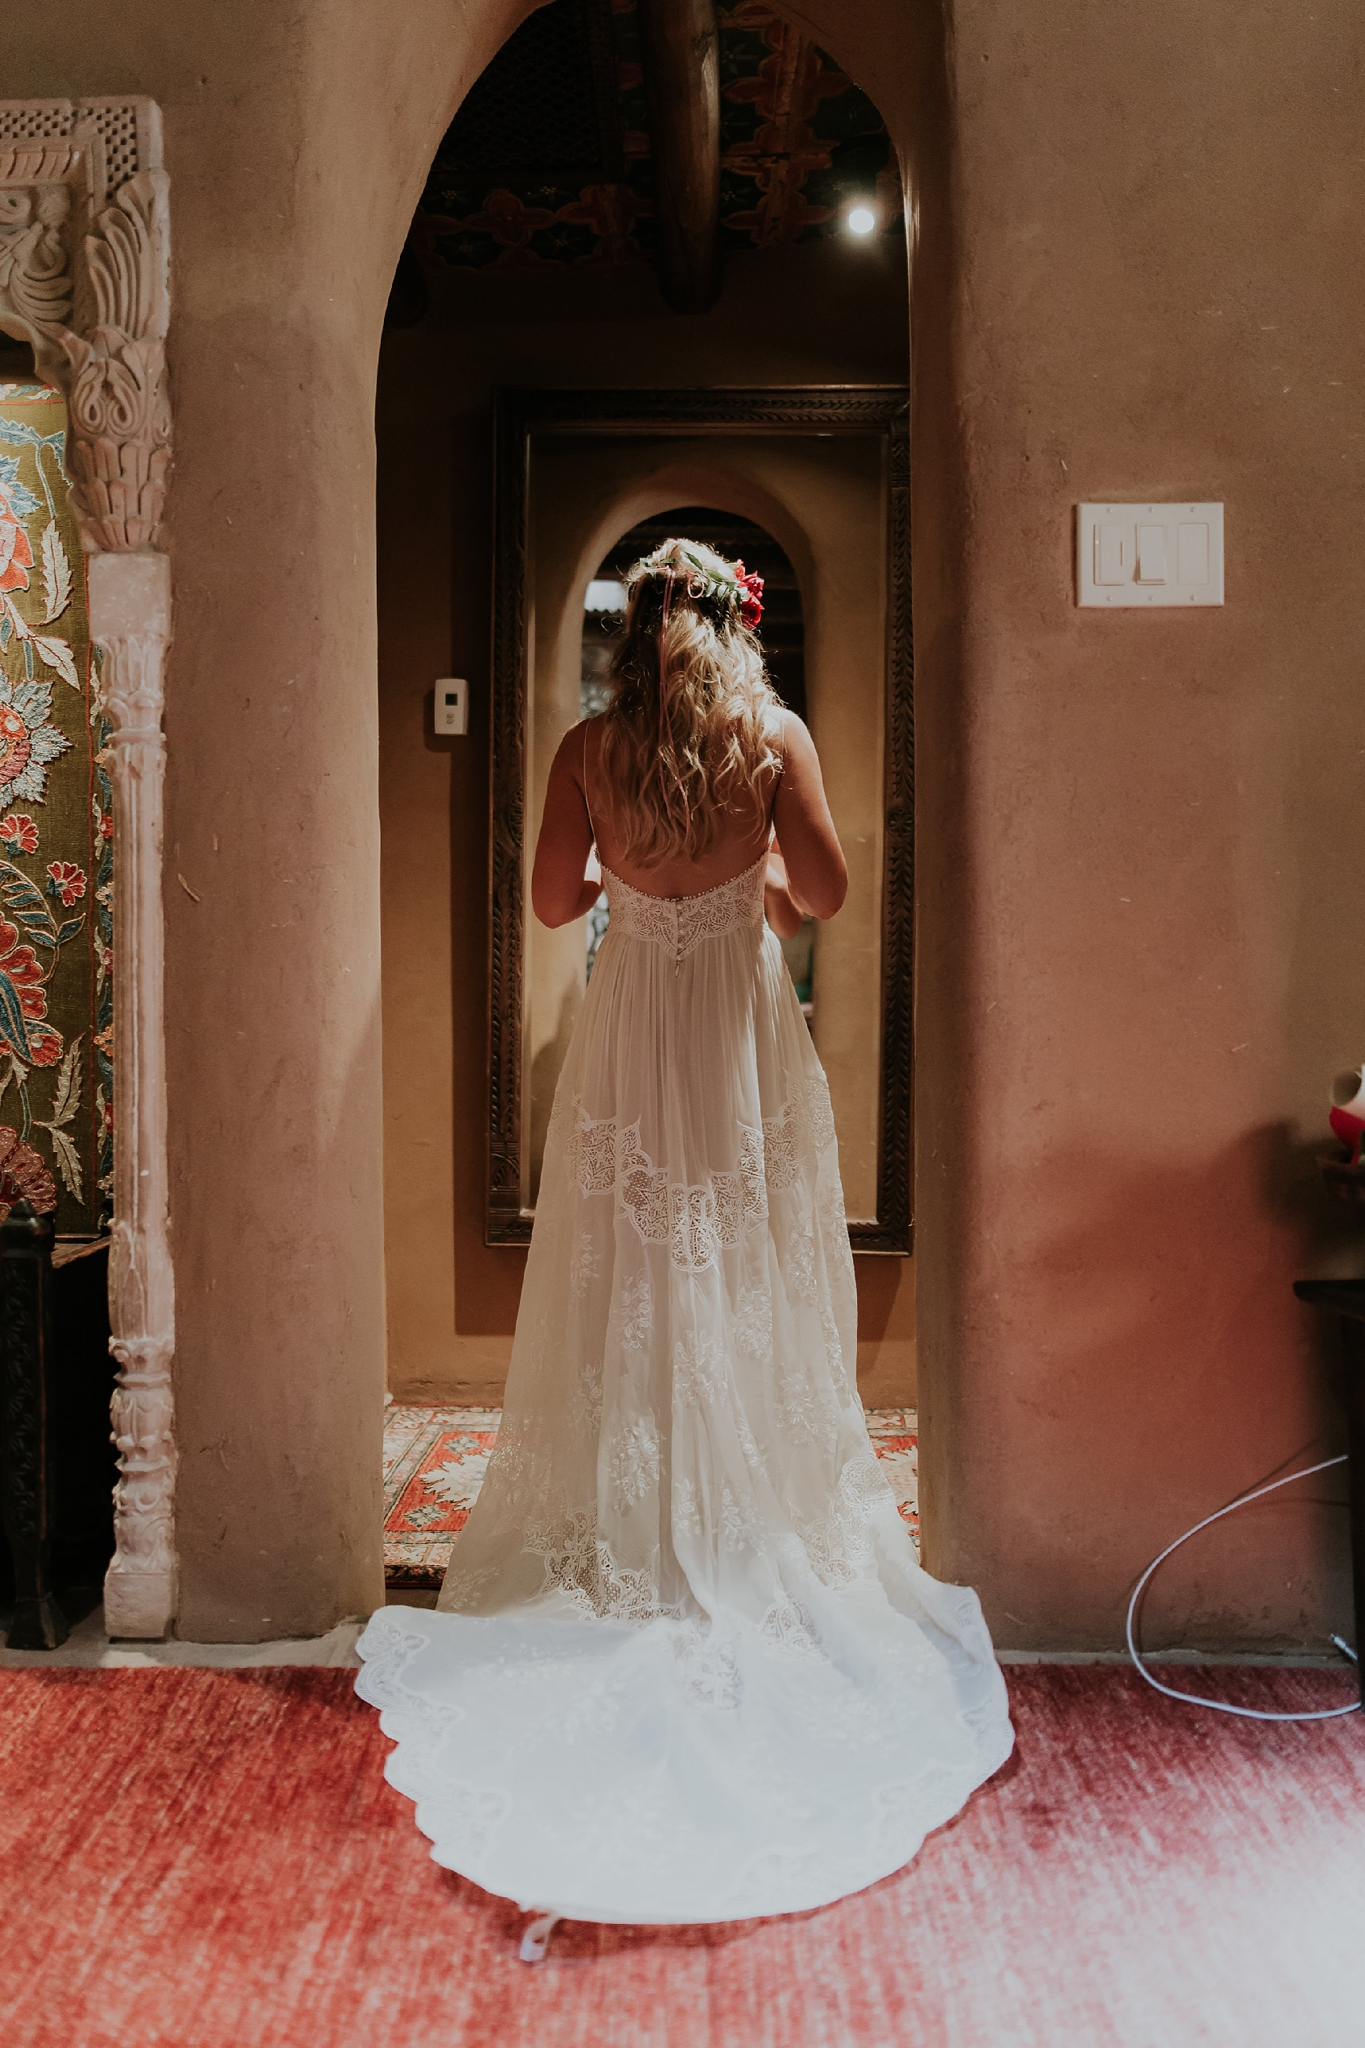 Alicia+lucia+photography+-+albuquerque+wedding+photographer+-+santa+fe+wedding+photography+-+new+mexico+wedding+photographer+-+new+mexico+wedding+-+wedding+venues+-+new+mexico+wedding+venues+-+colorado+wedding+venues_0089.jpg